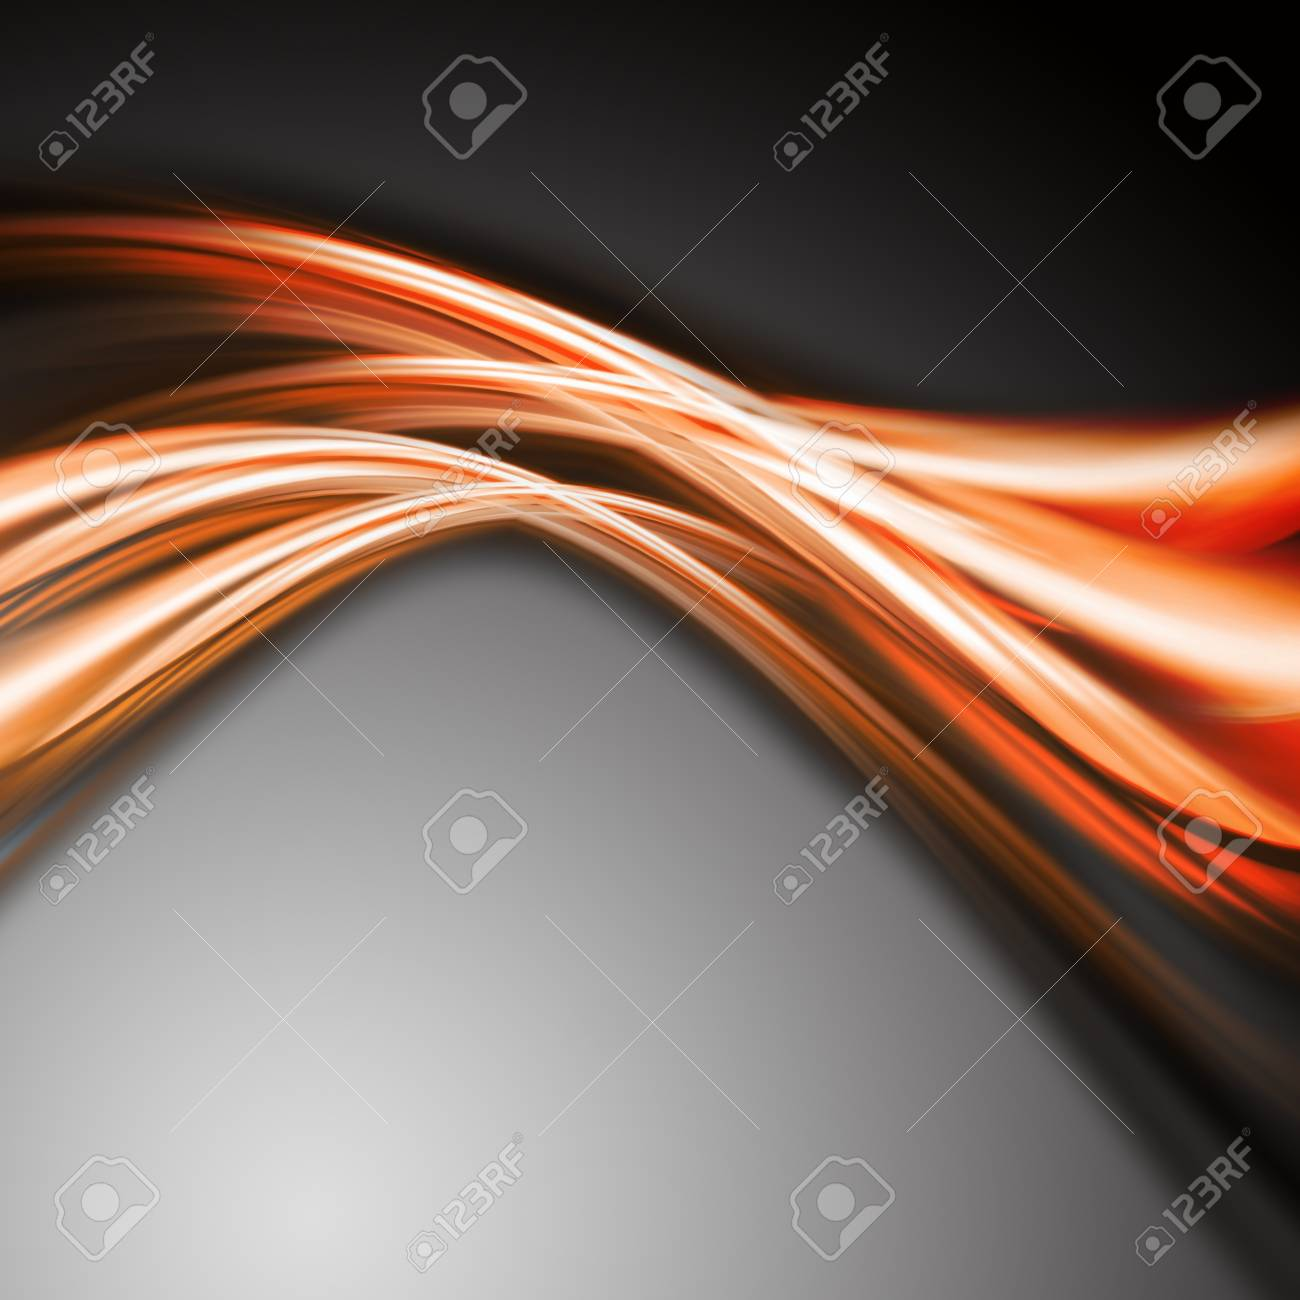 Abstract elegant background design with space for your text Stock Photo - 15197772